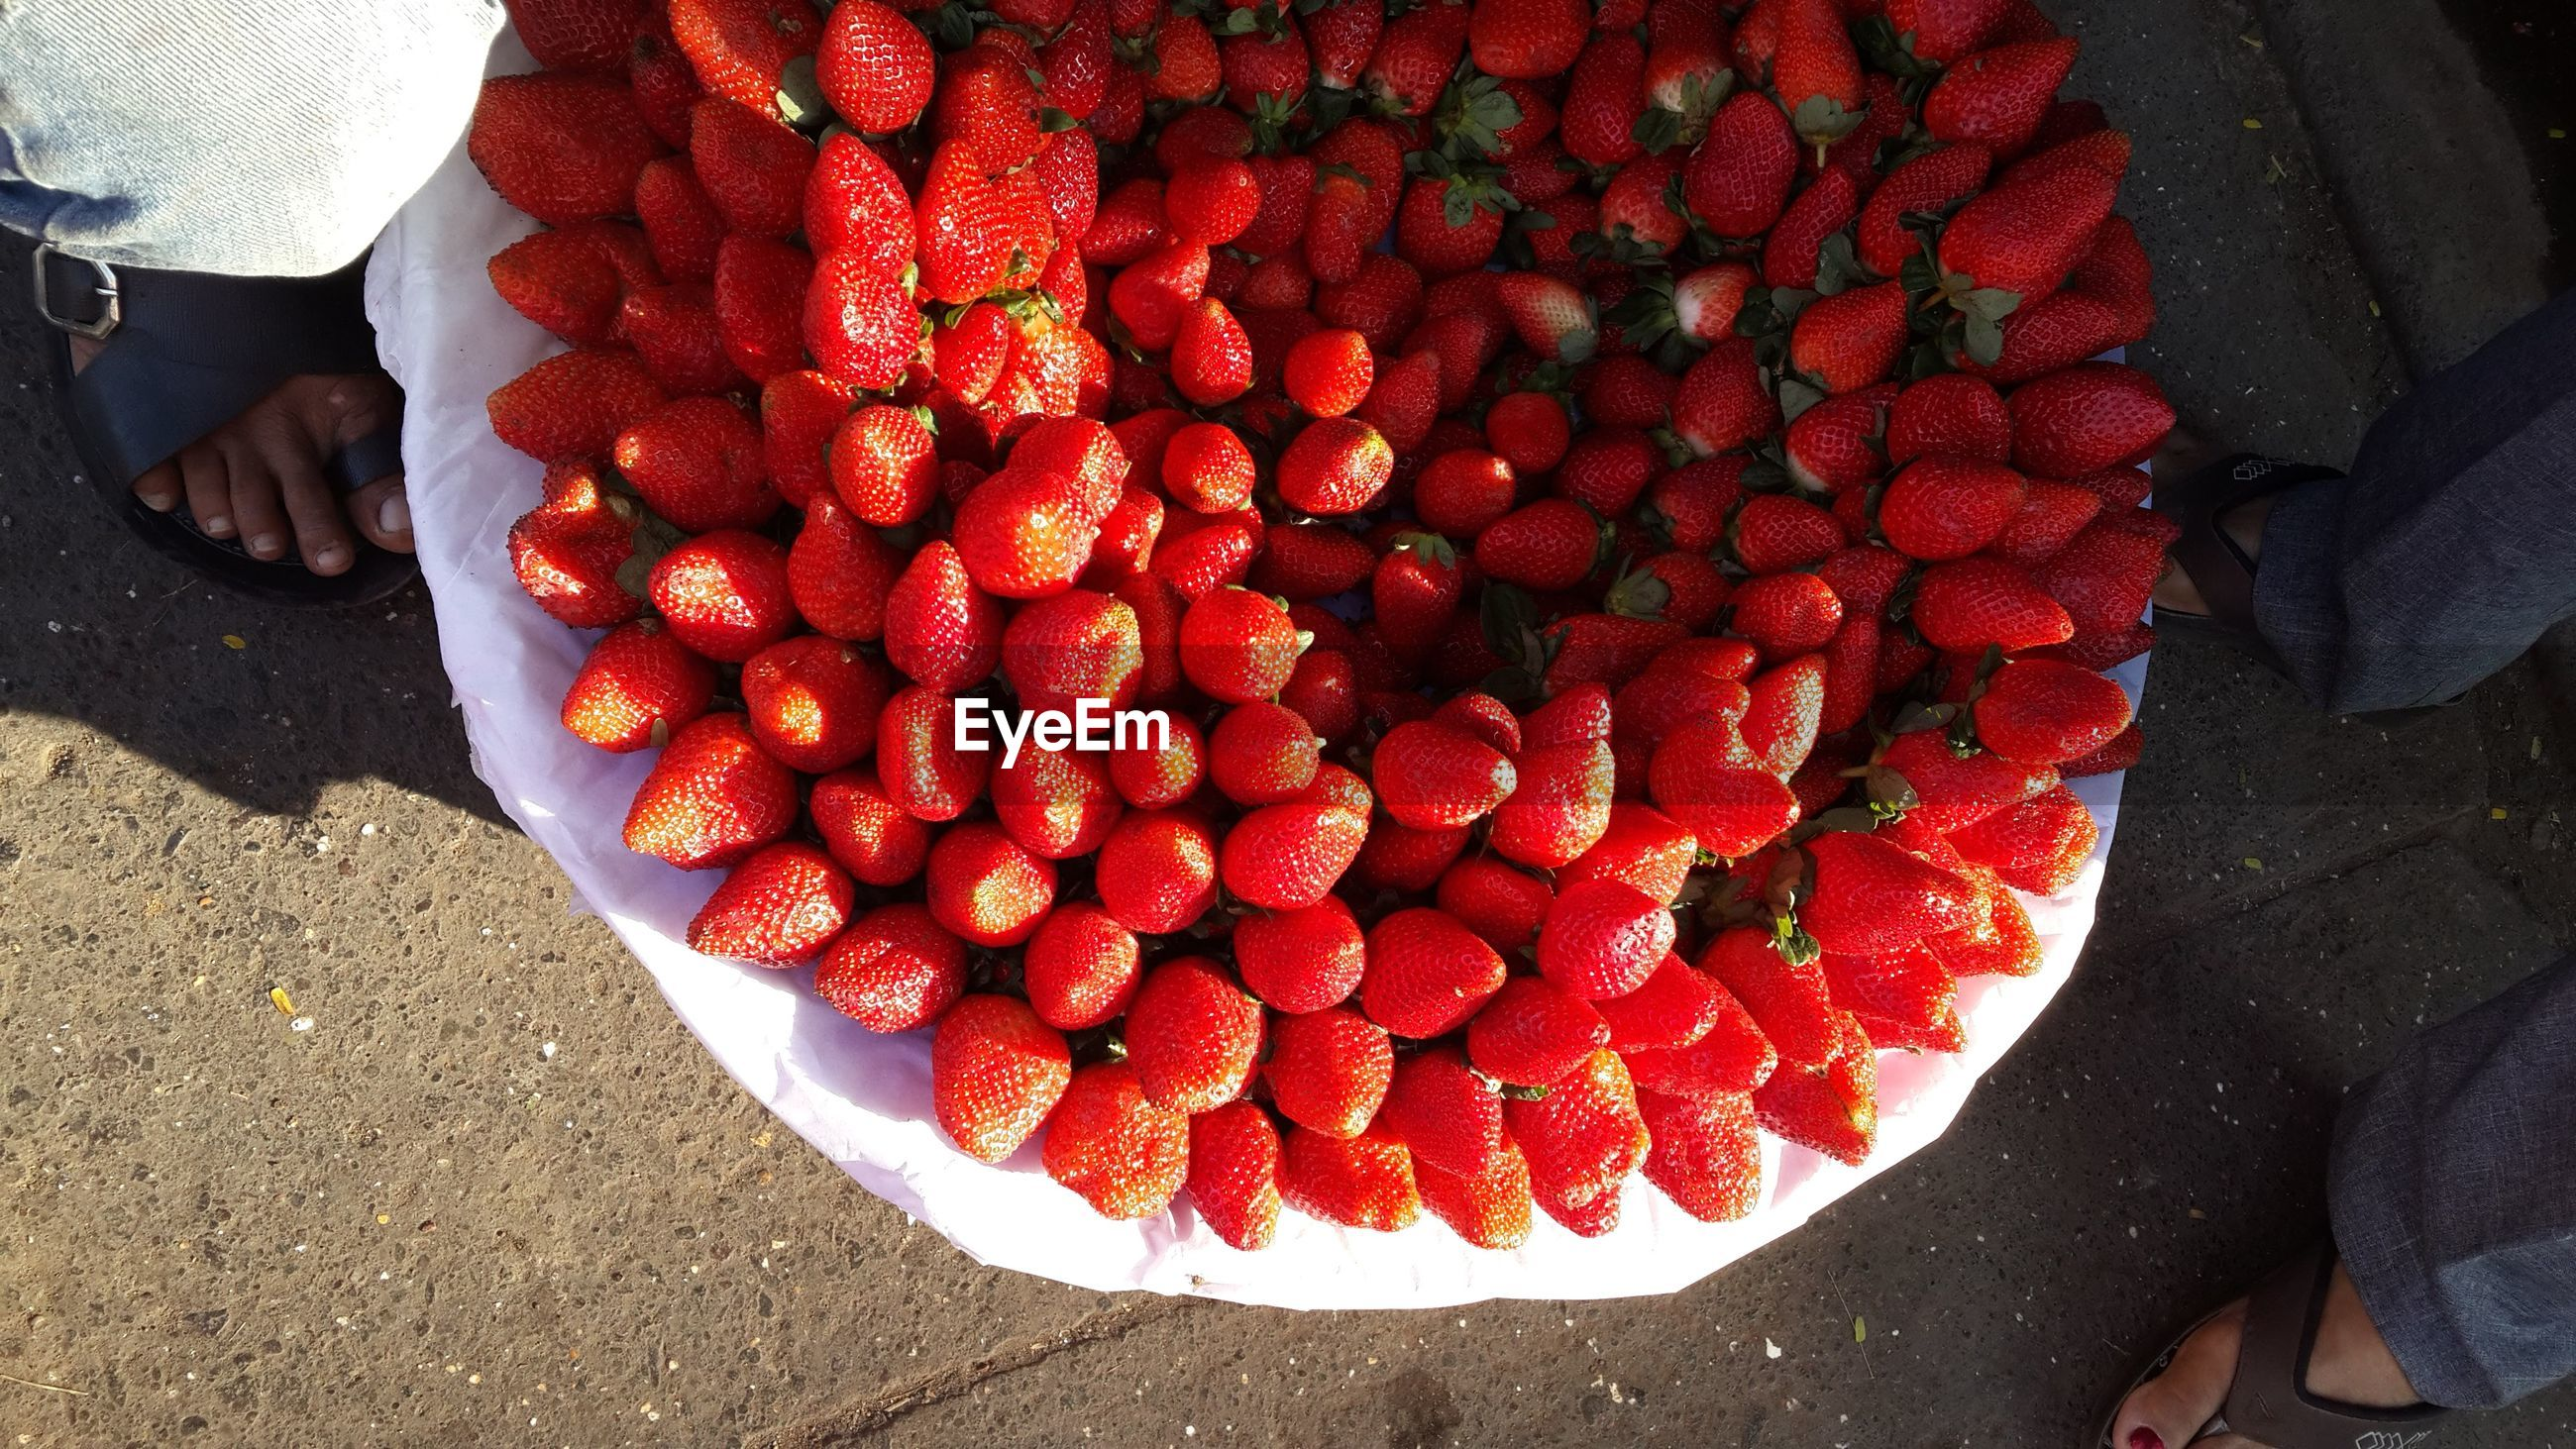 Close-up of red strawberries ina basket